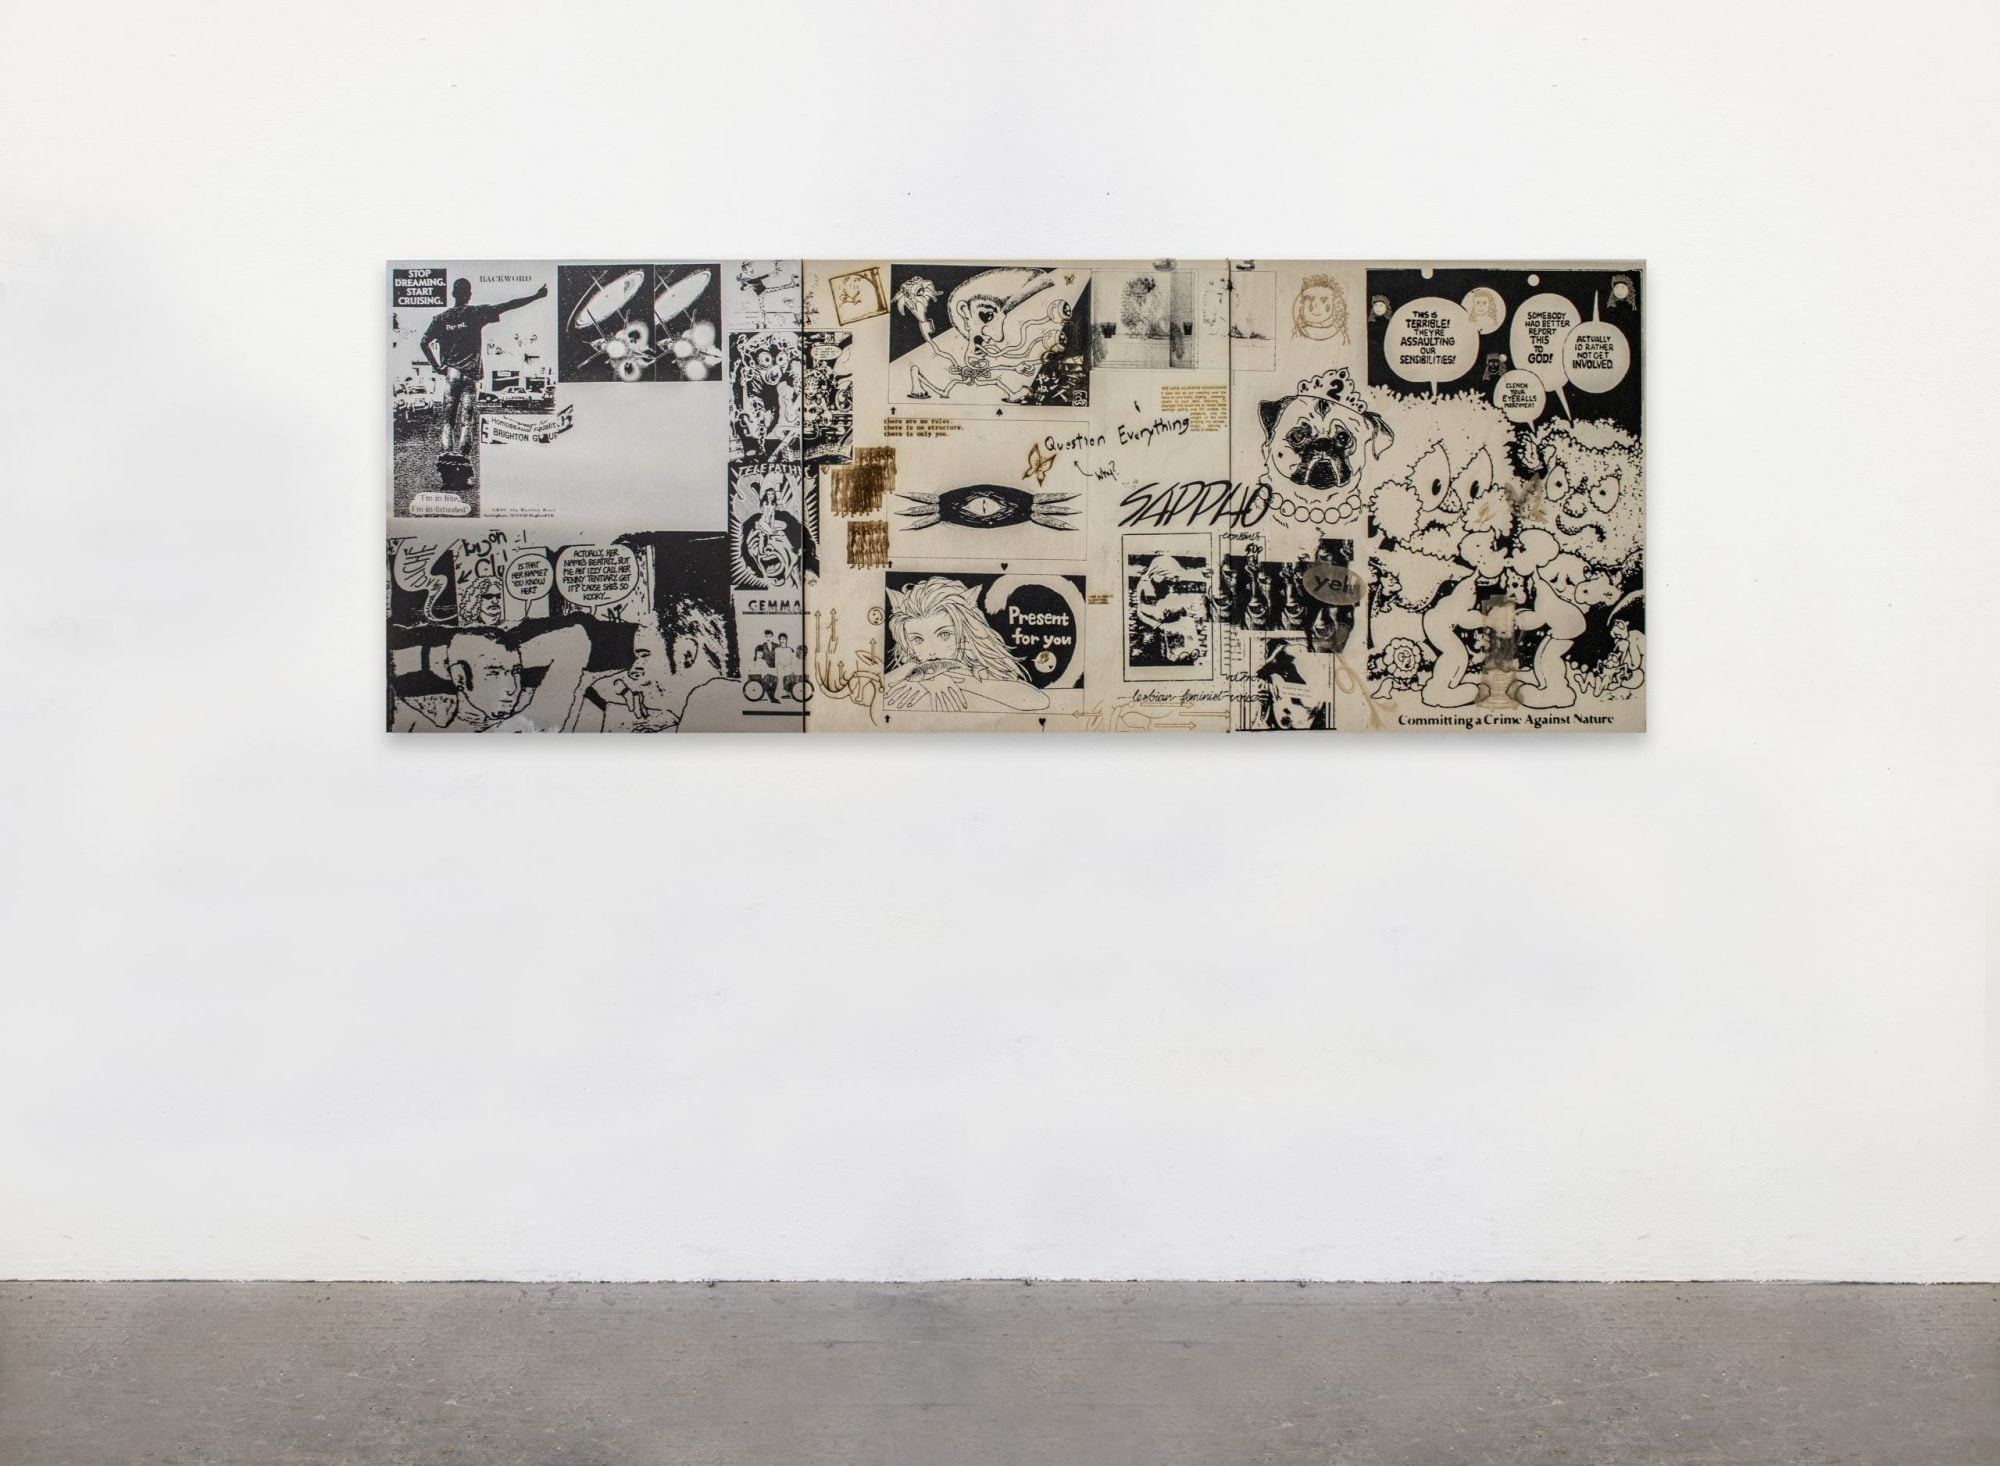 This artwork, Periploi_1/3 (2021) is a triptych made up of three square panels; the left is aluminium and the two on the right are plywood. Black and white imagery, text and drawings cover the three panels that depict comic book-like stories about queer culture. Some text is also burnt into the plywood panels, appearing in a dark brown.